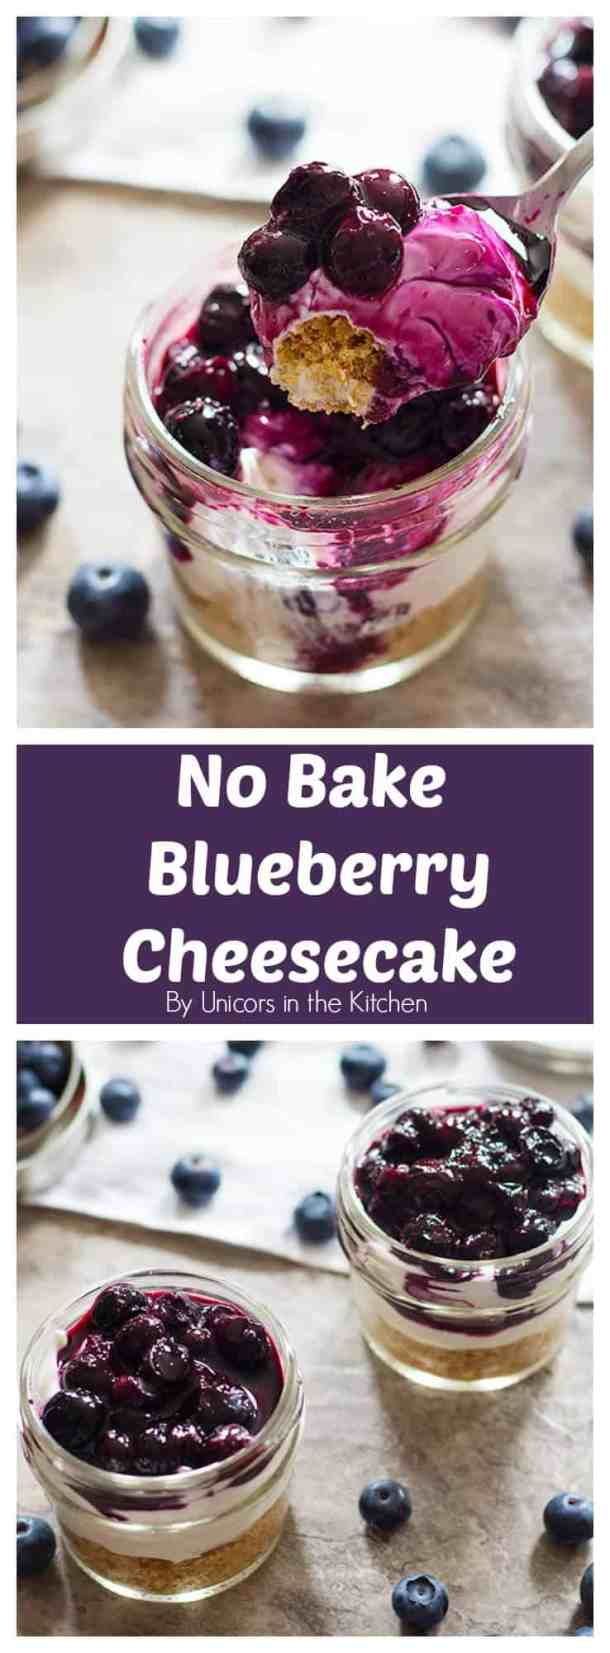 Whip up this indulgent No Bake Mini Blueberry Cheesecake in less than 30 minutes with very basic ingredients! It's creamy, velvety and will make you super happy!